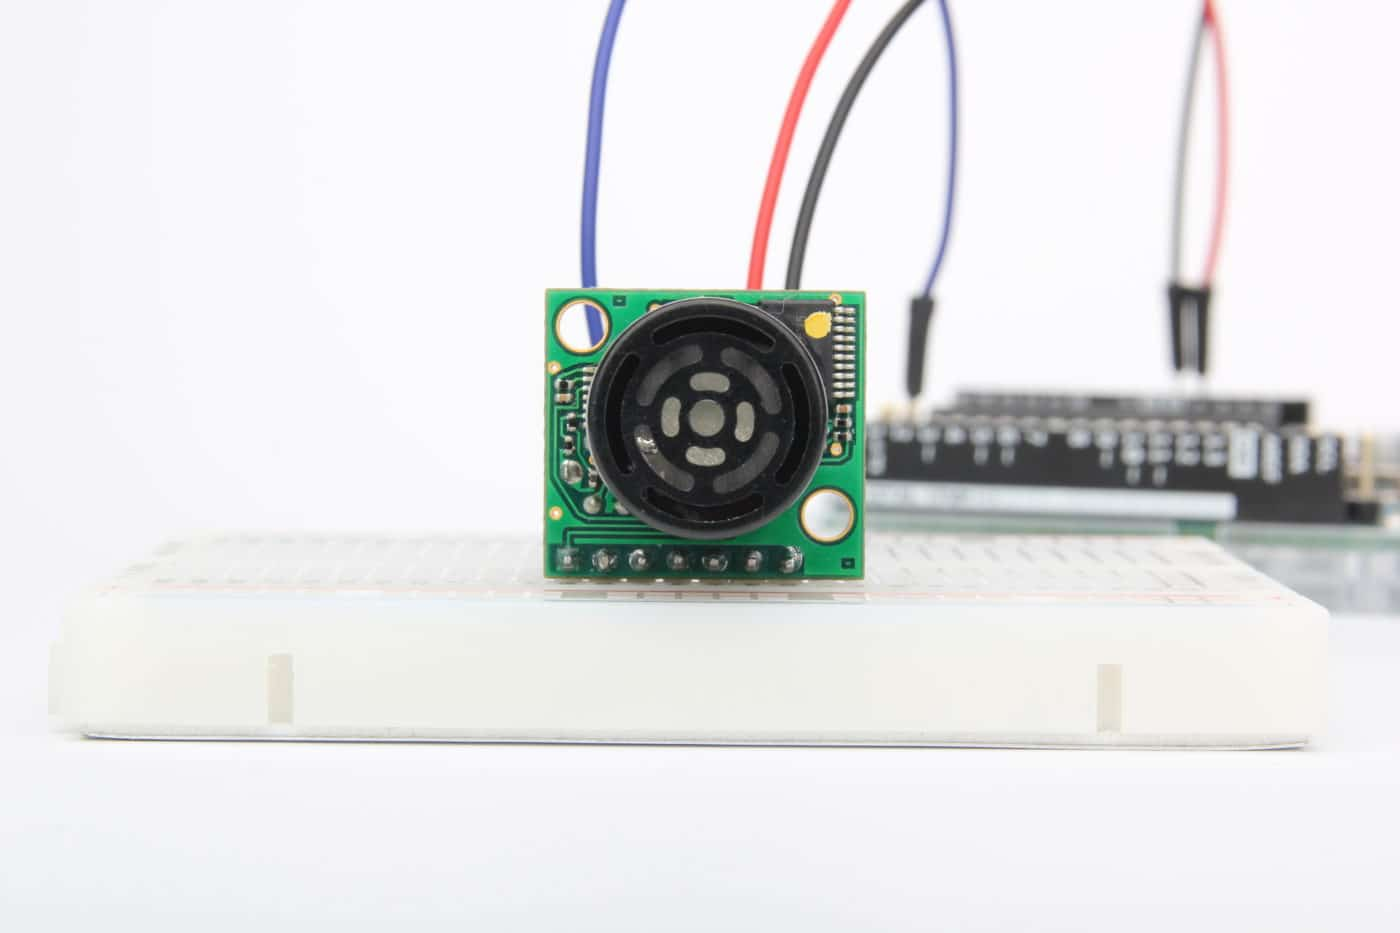 MB1240 Ultrasonic Distance sensor with Arduino Featured Image